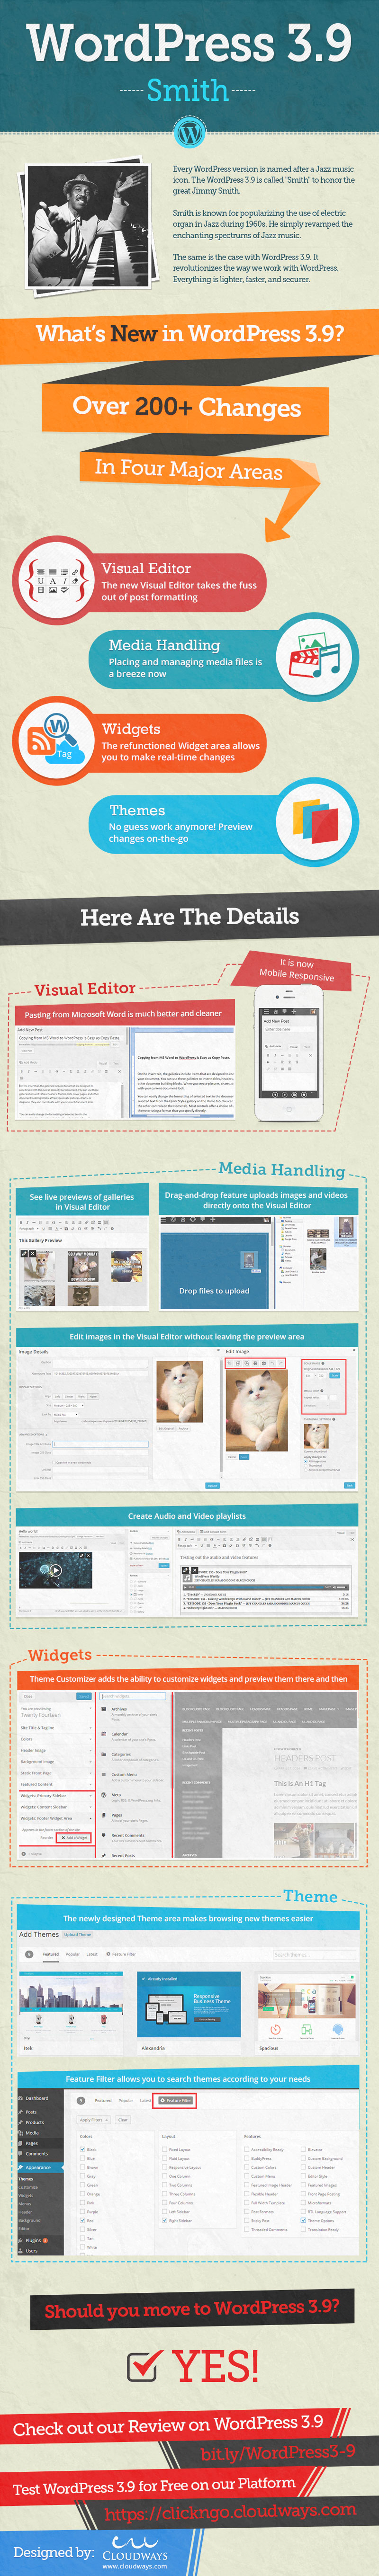 infografia wordpress 39